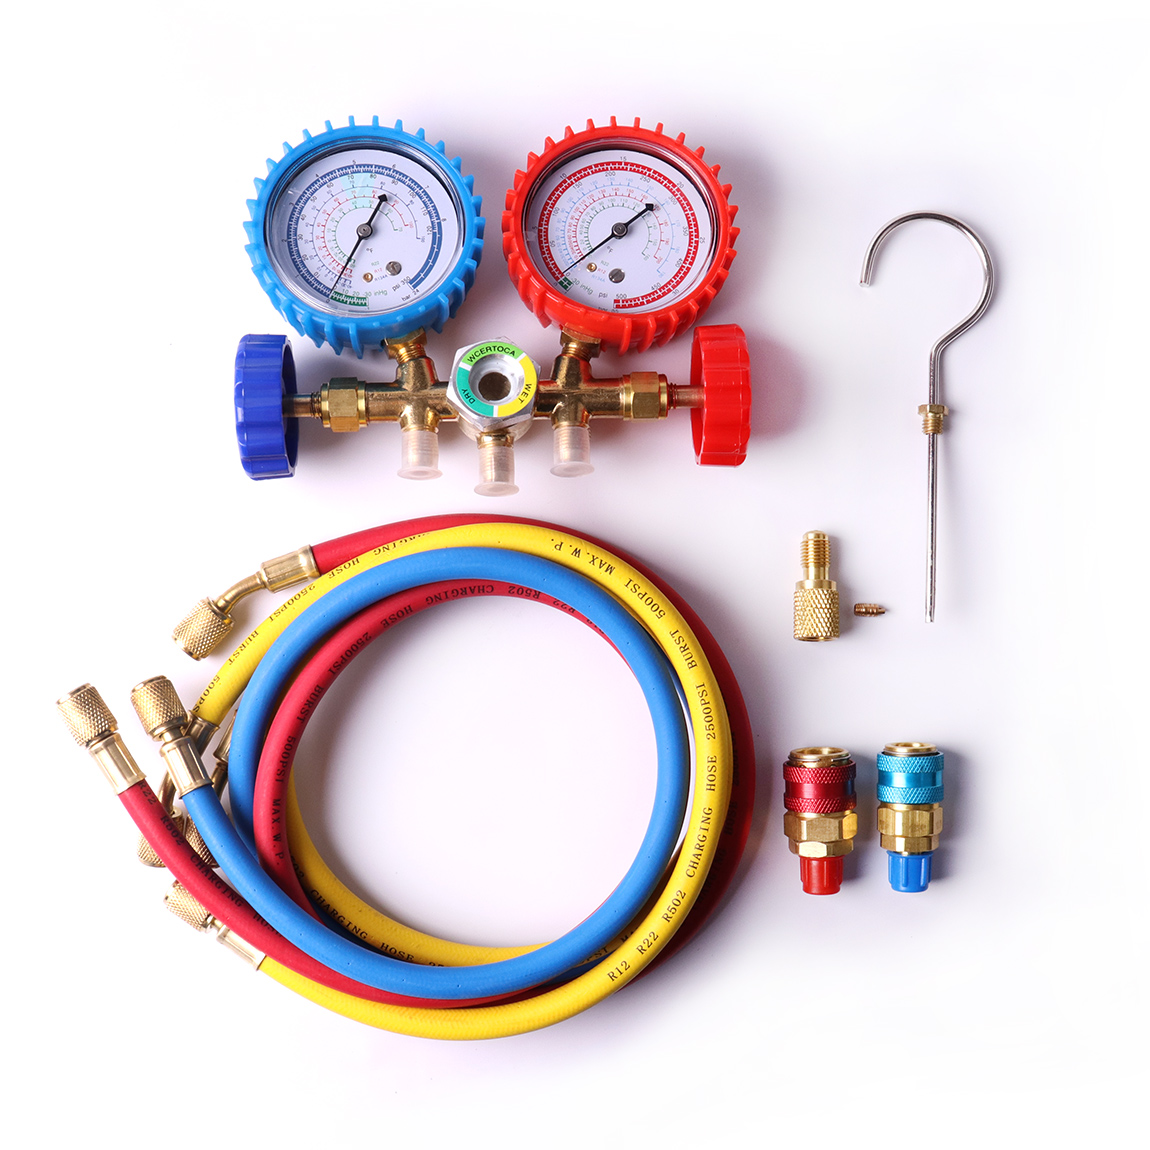 New Air Conditioning Red Blue H-L R134 Quick Couplers R12 R22 R502 and R134a A/C Manifold Brass Gauge Set with 3 Charging Hoses точка доступа mikrotik rbsxt 5ndr2 sxt lite 5 802 11n 5ghz